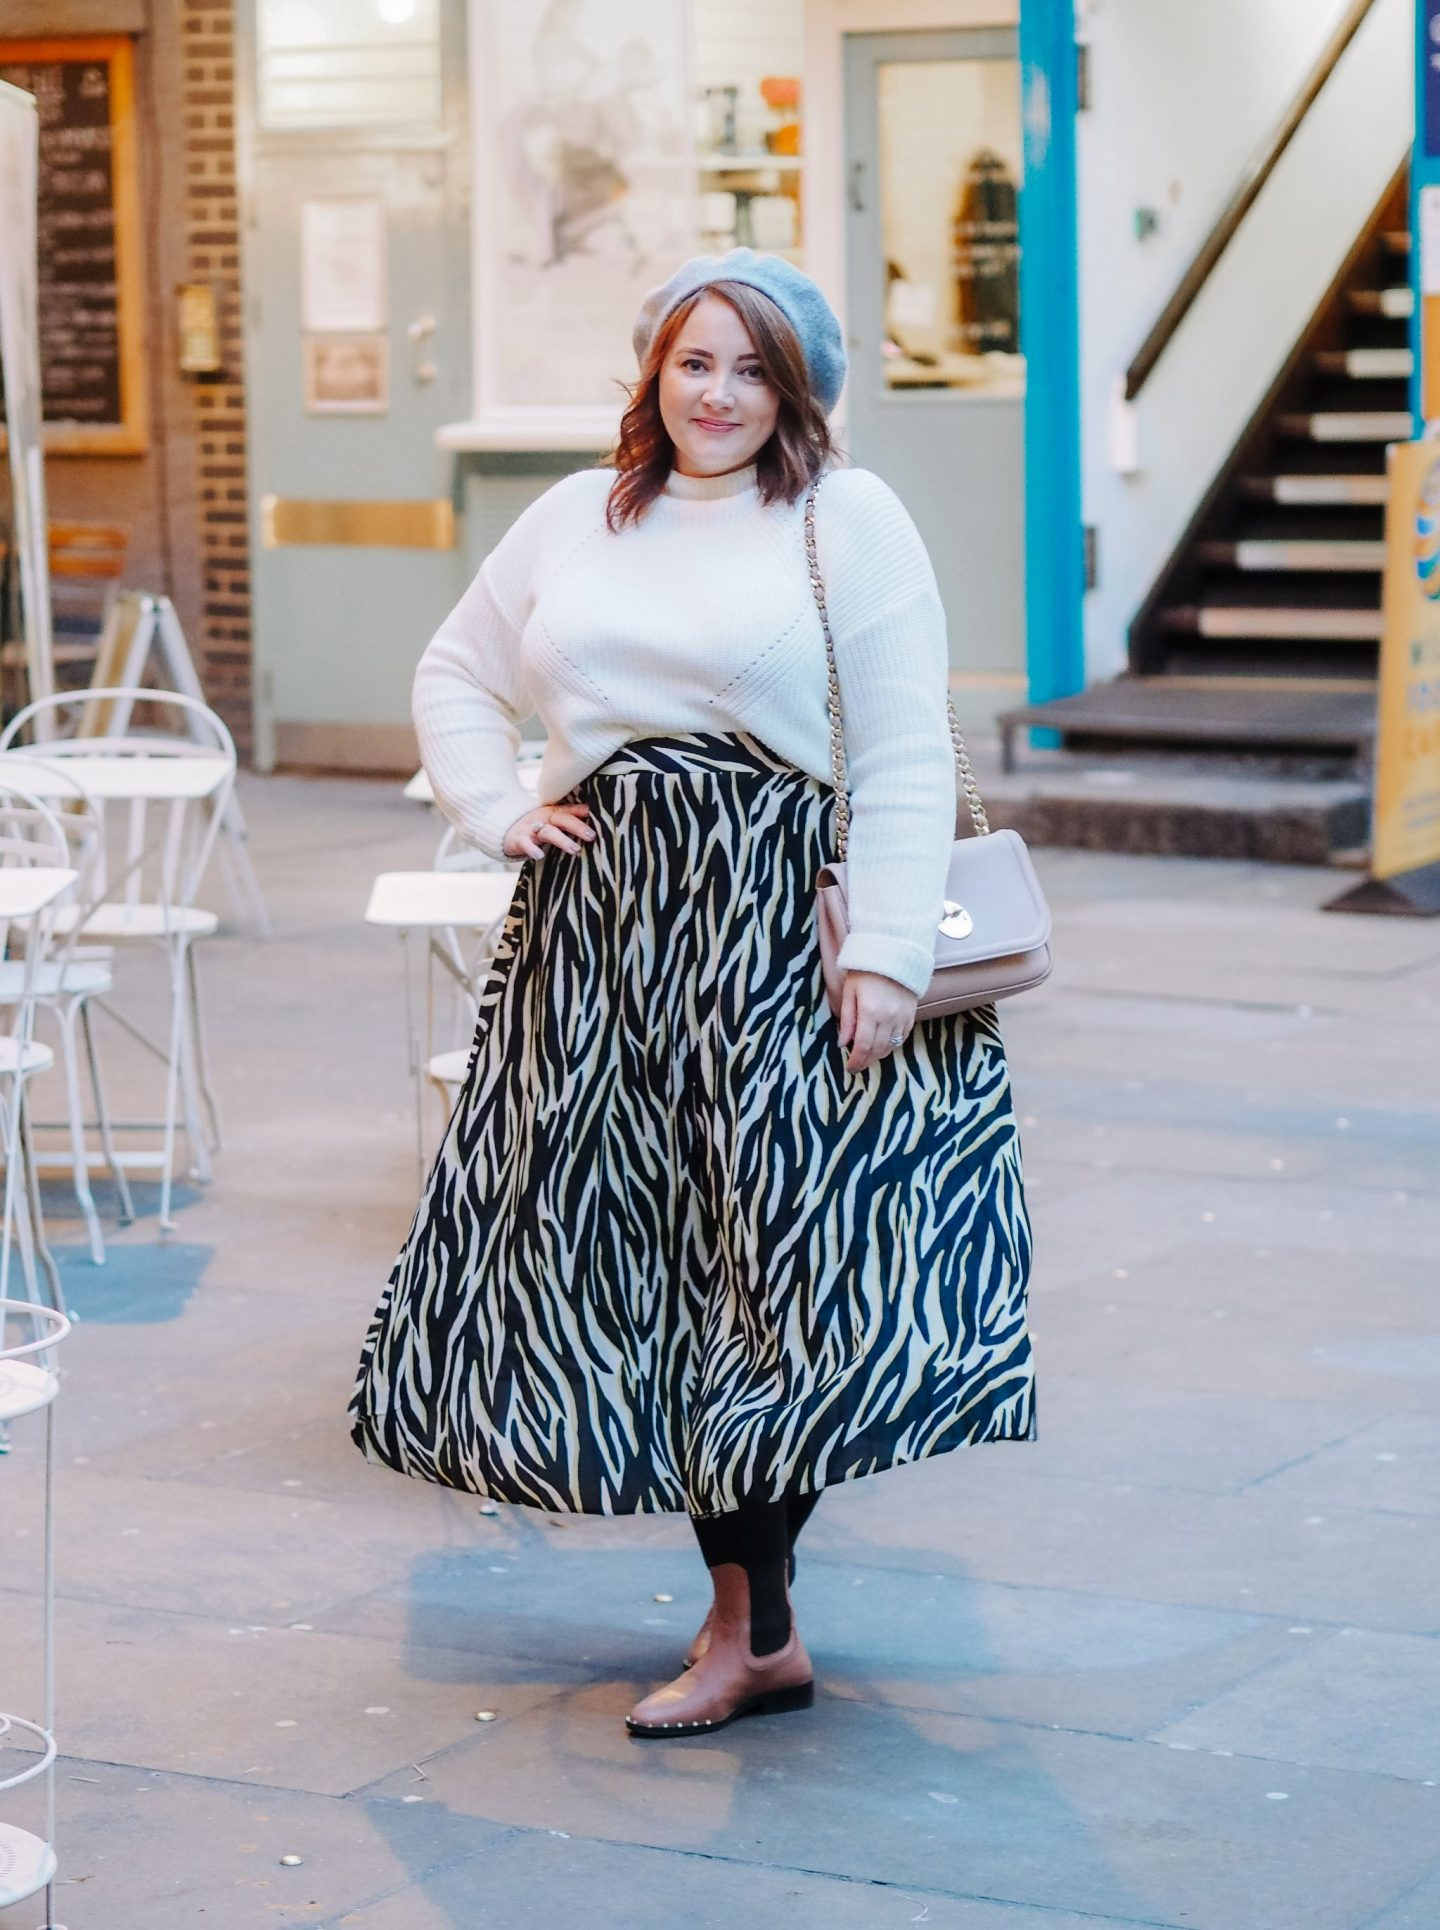 A Bargain Animal Print Midi Skirt: Add A Splash Of The Exotic To Your Wardrobe